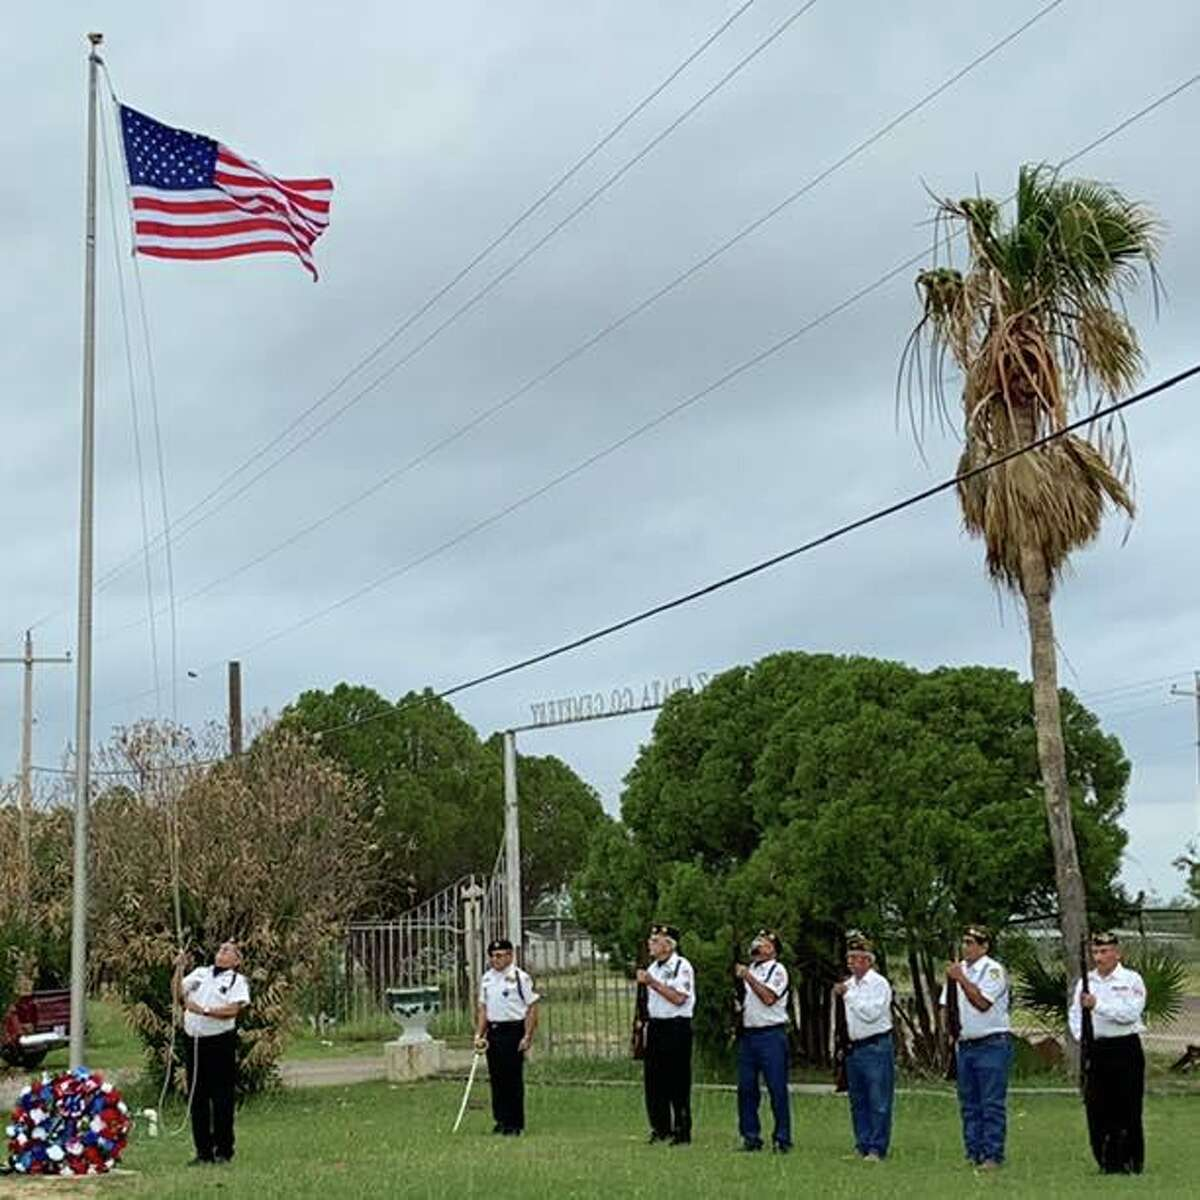 The Veterans of Zapata held a flag raising ceremony on Memorial Day at the Zapata County Cemetery.